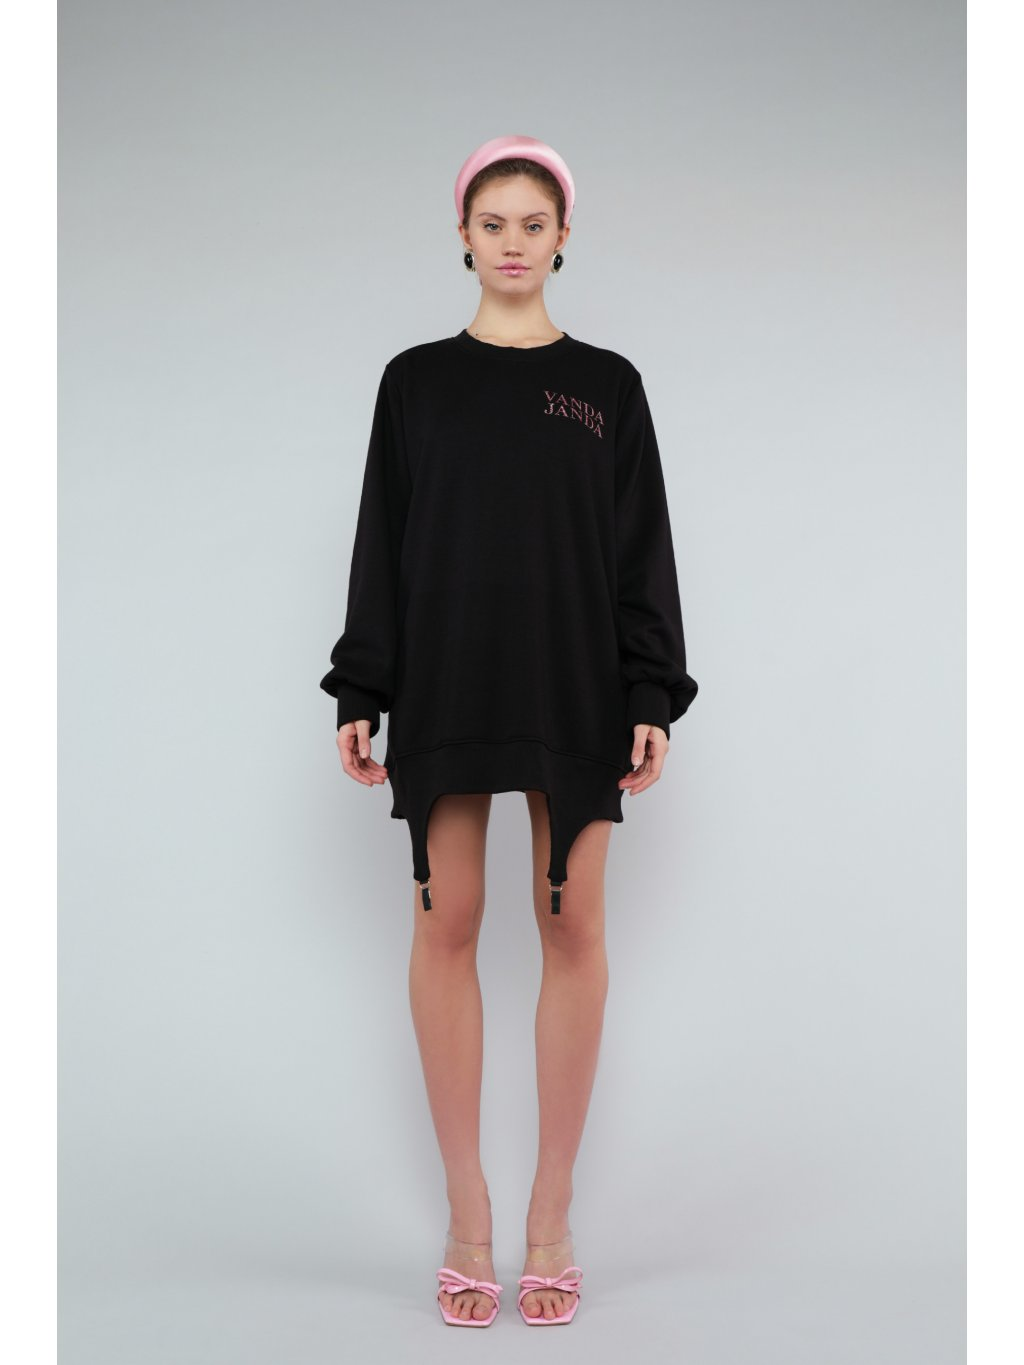 FULL TIME DIVA CLUB crewneck dress